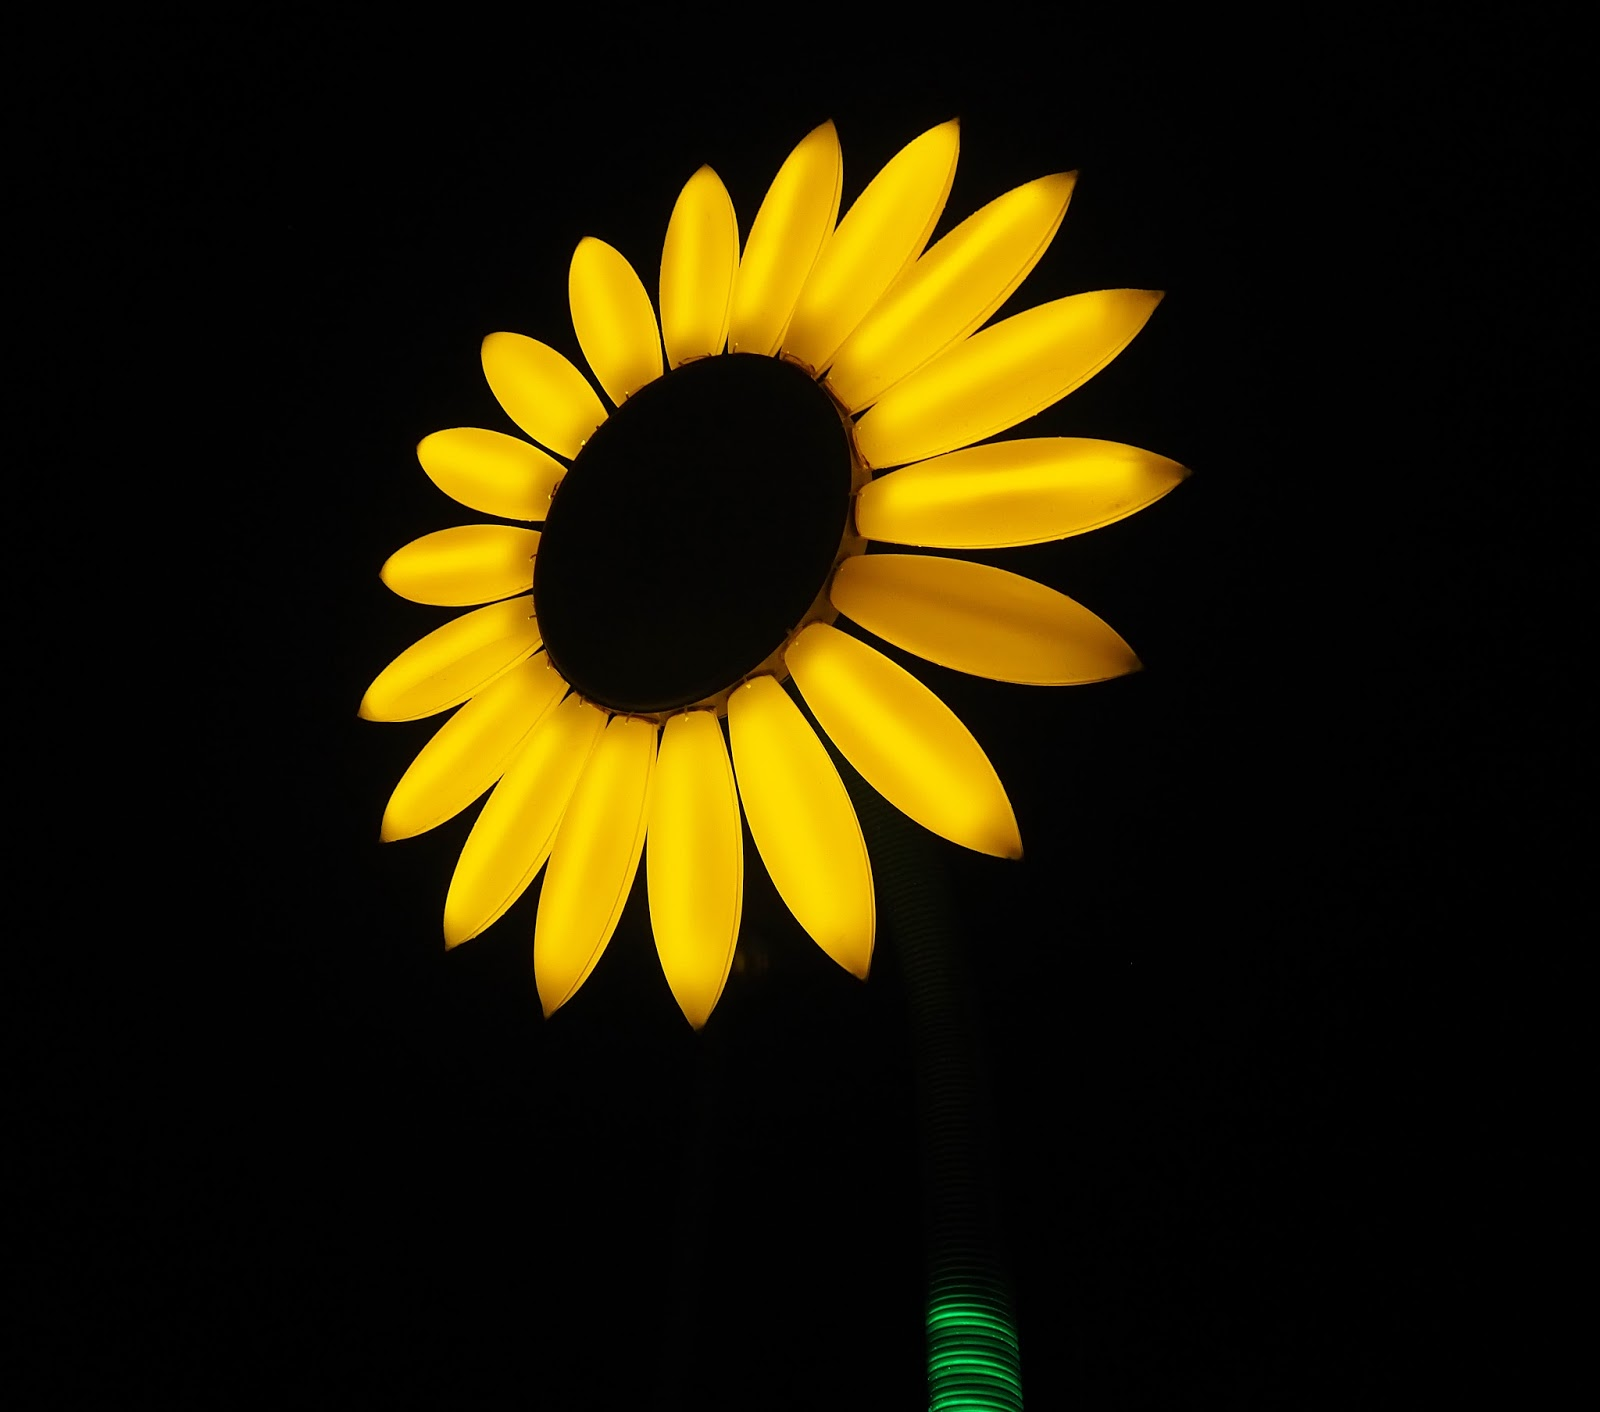 Vivid Sydney Sunflower